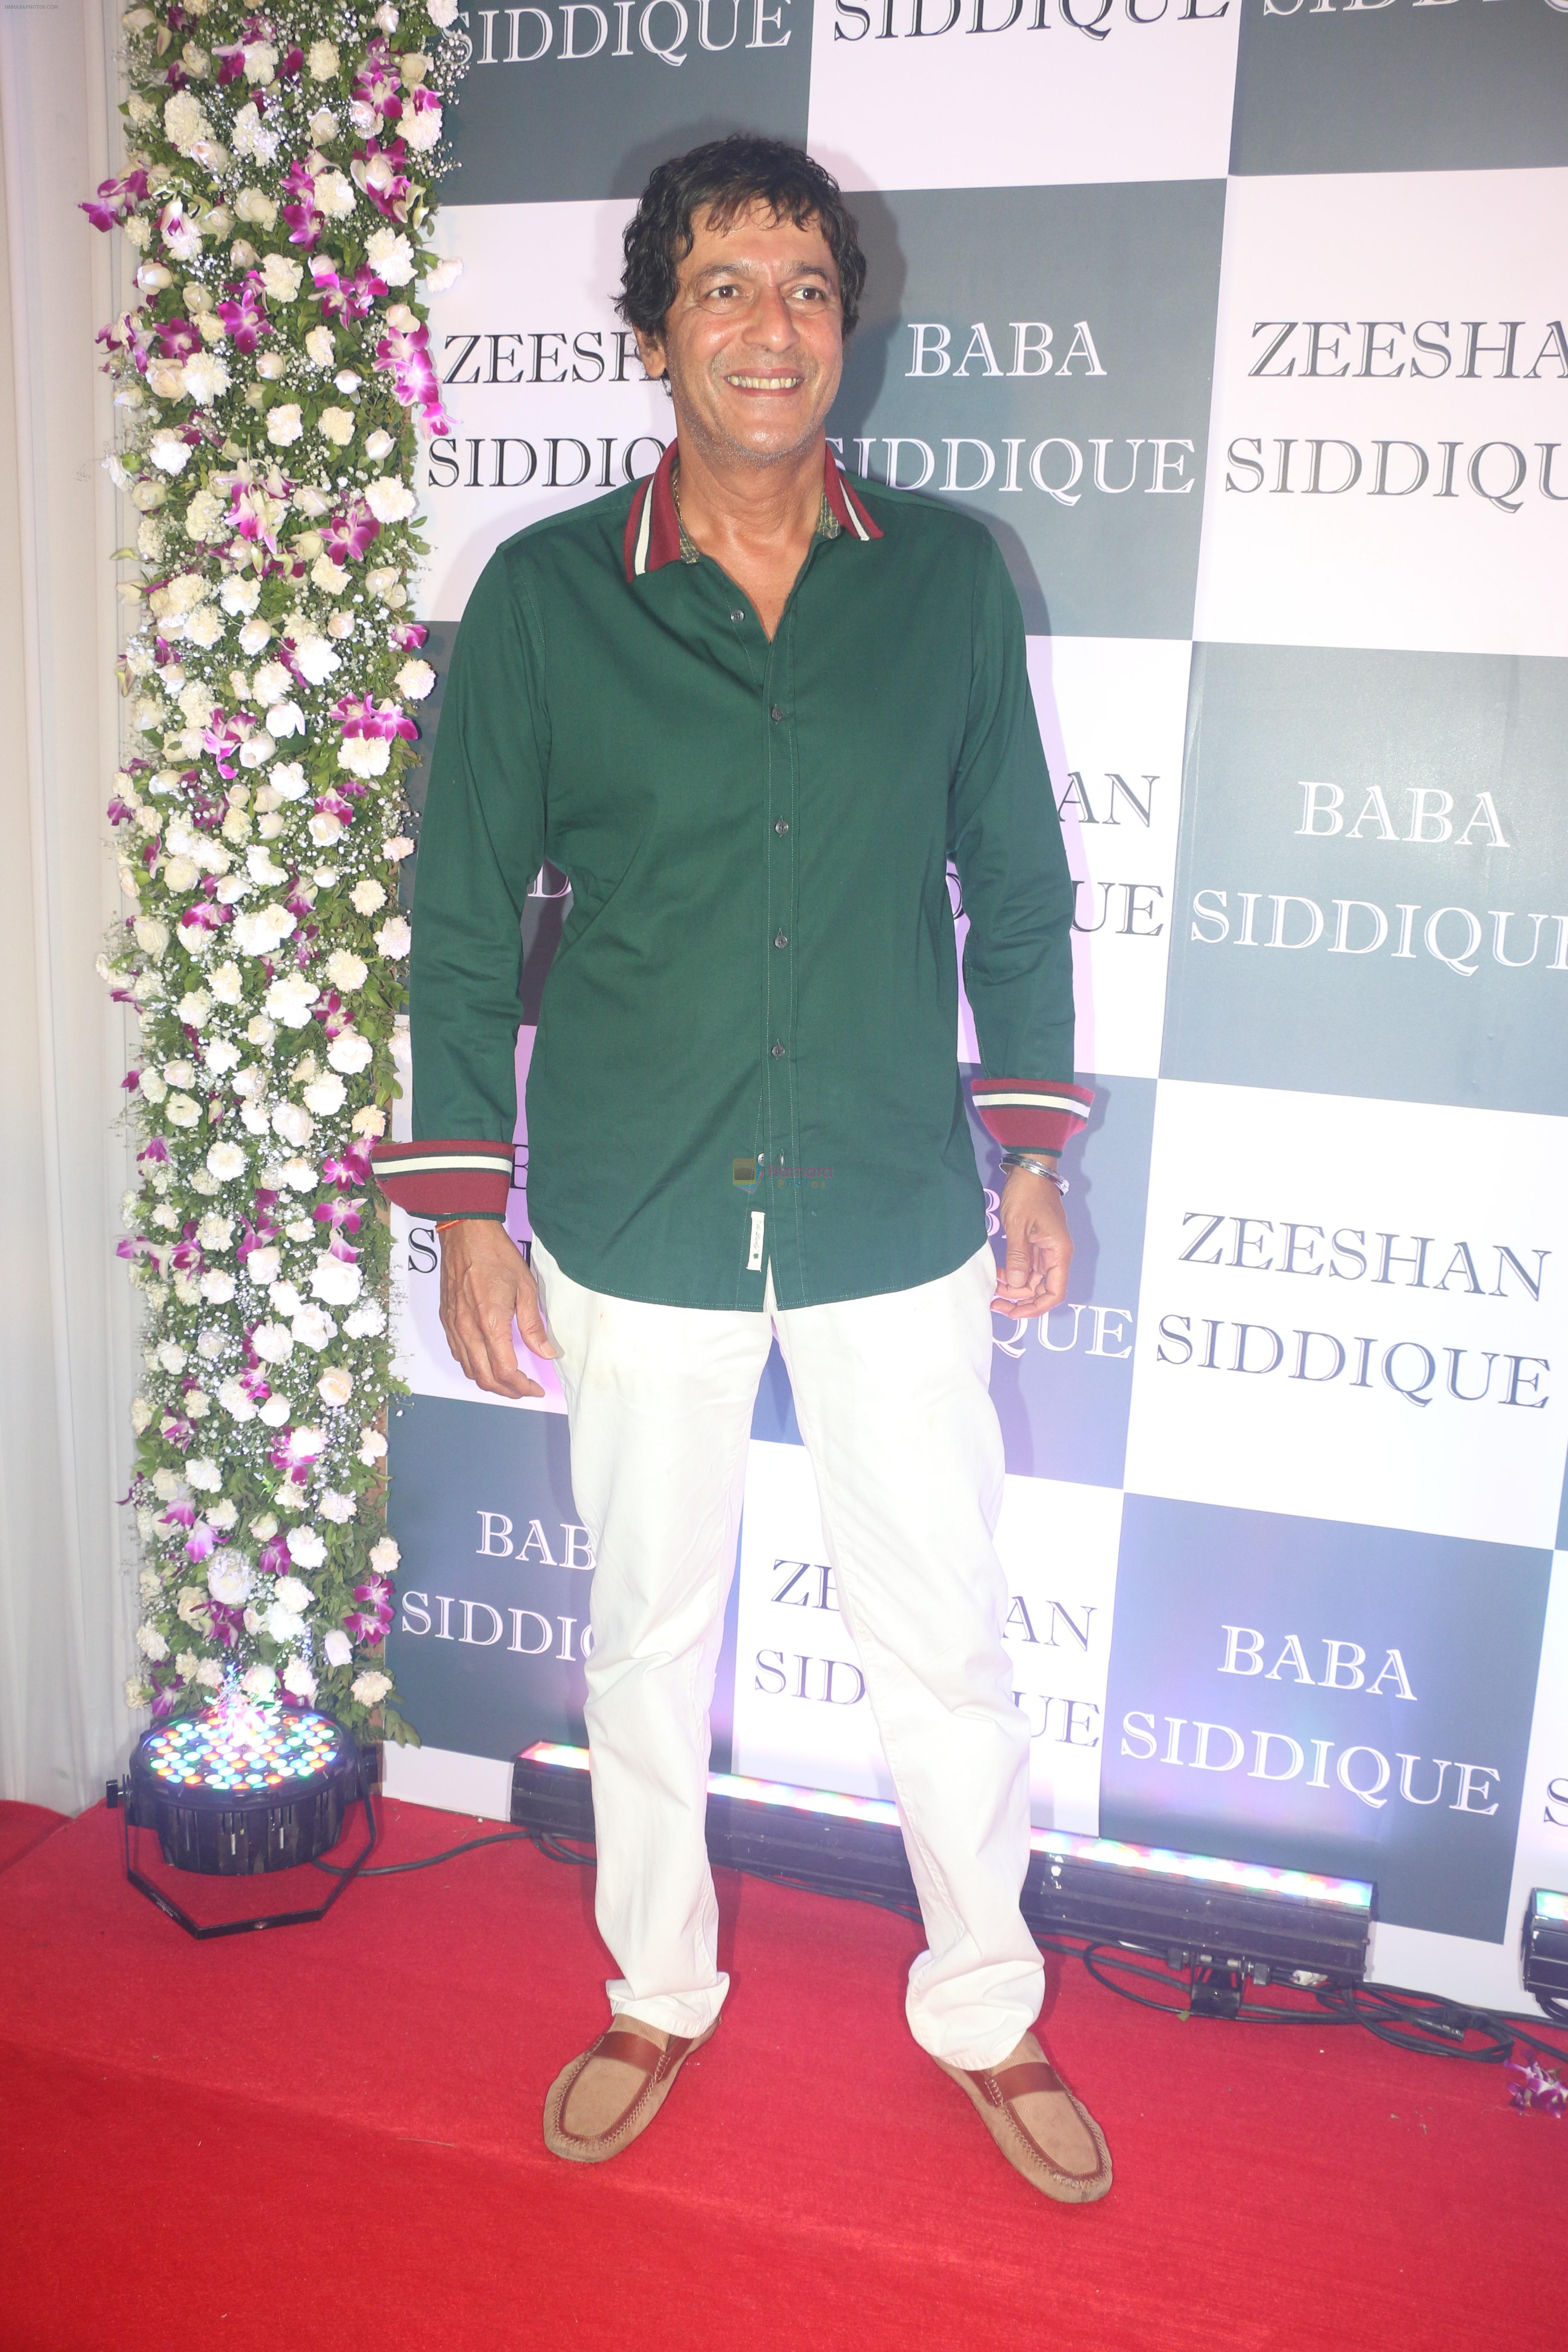 Chunky Pandey at Baba Siddiqui iftaar party in Taj Lands End bandra on 2nd June 2019